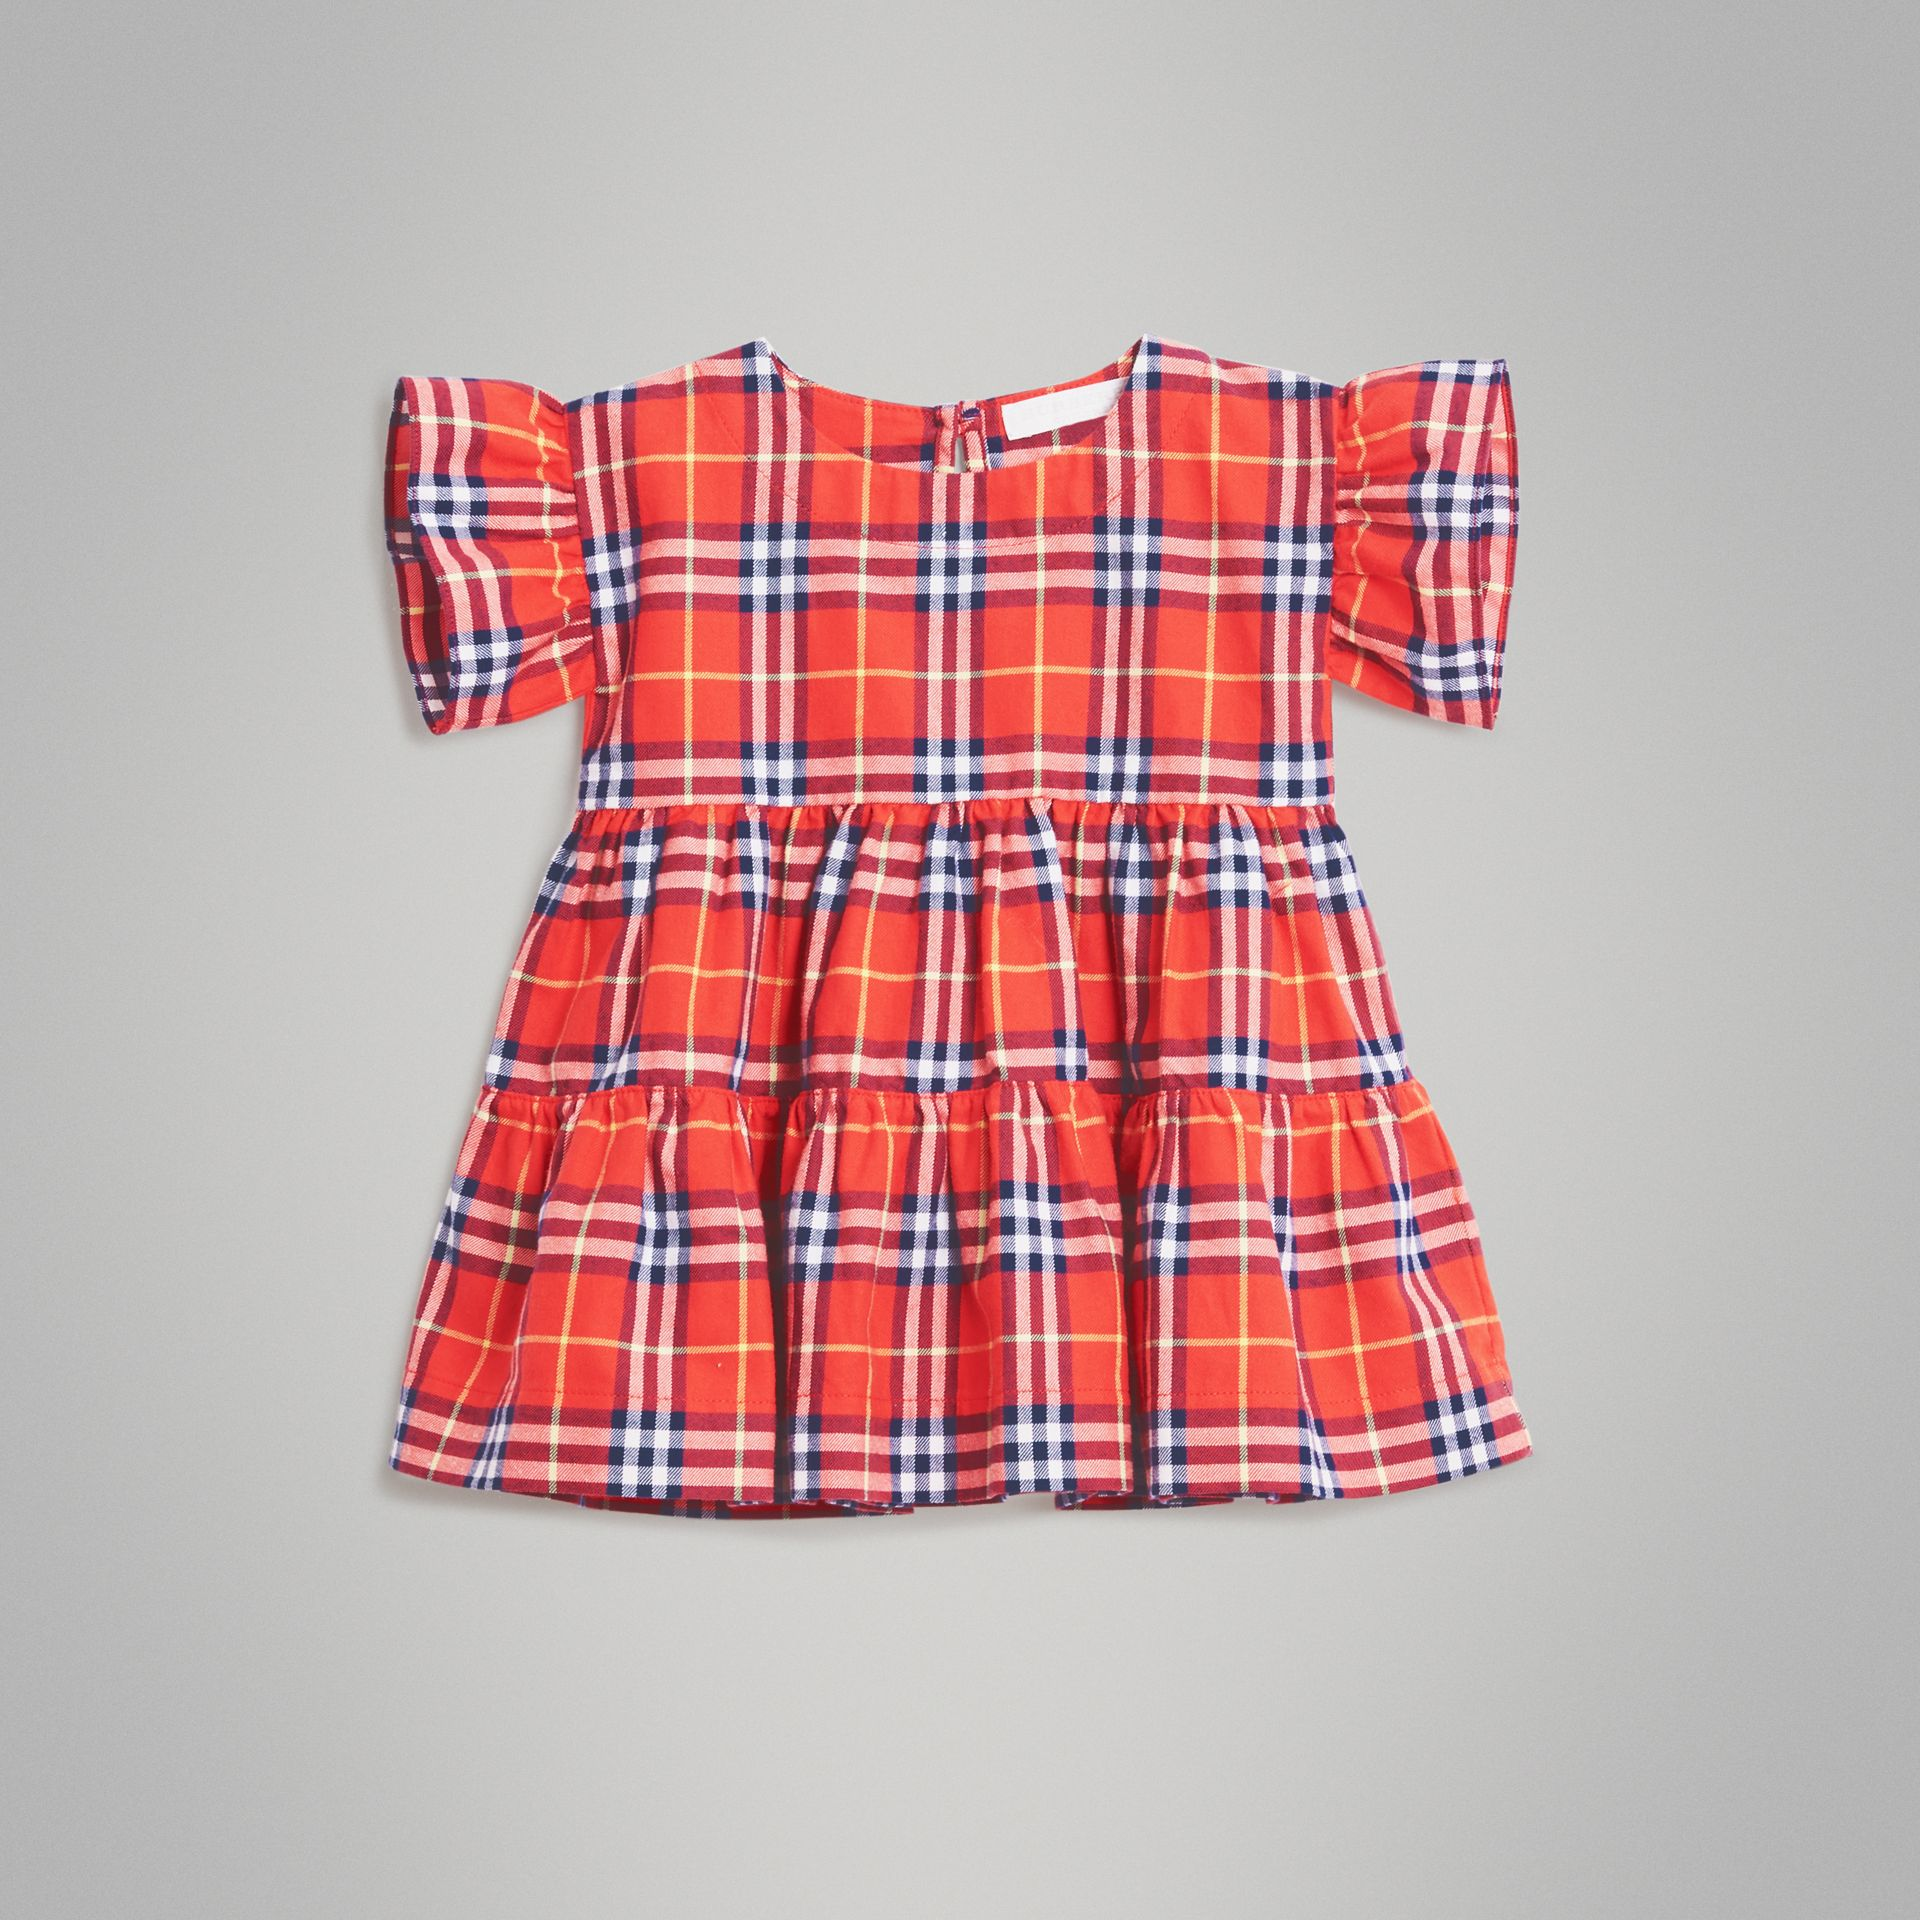 Ruffle Detail Cotton Check Dress in Orange Red - Children | Burberry - gallery image 0